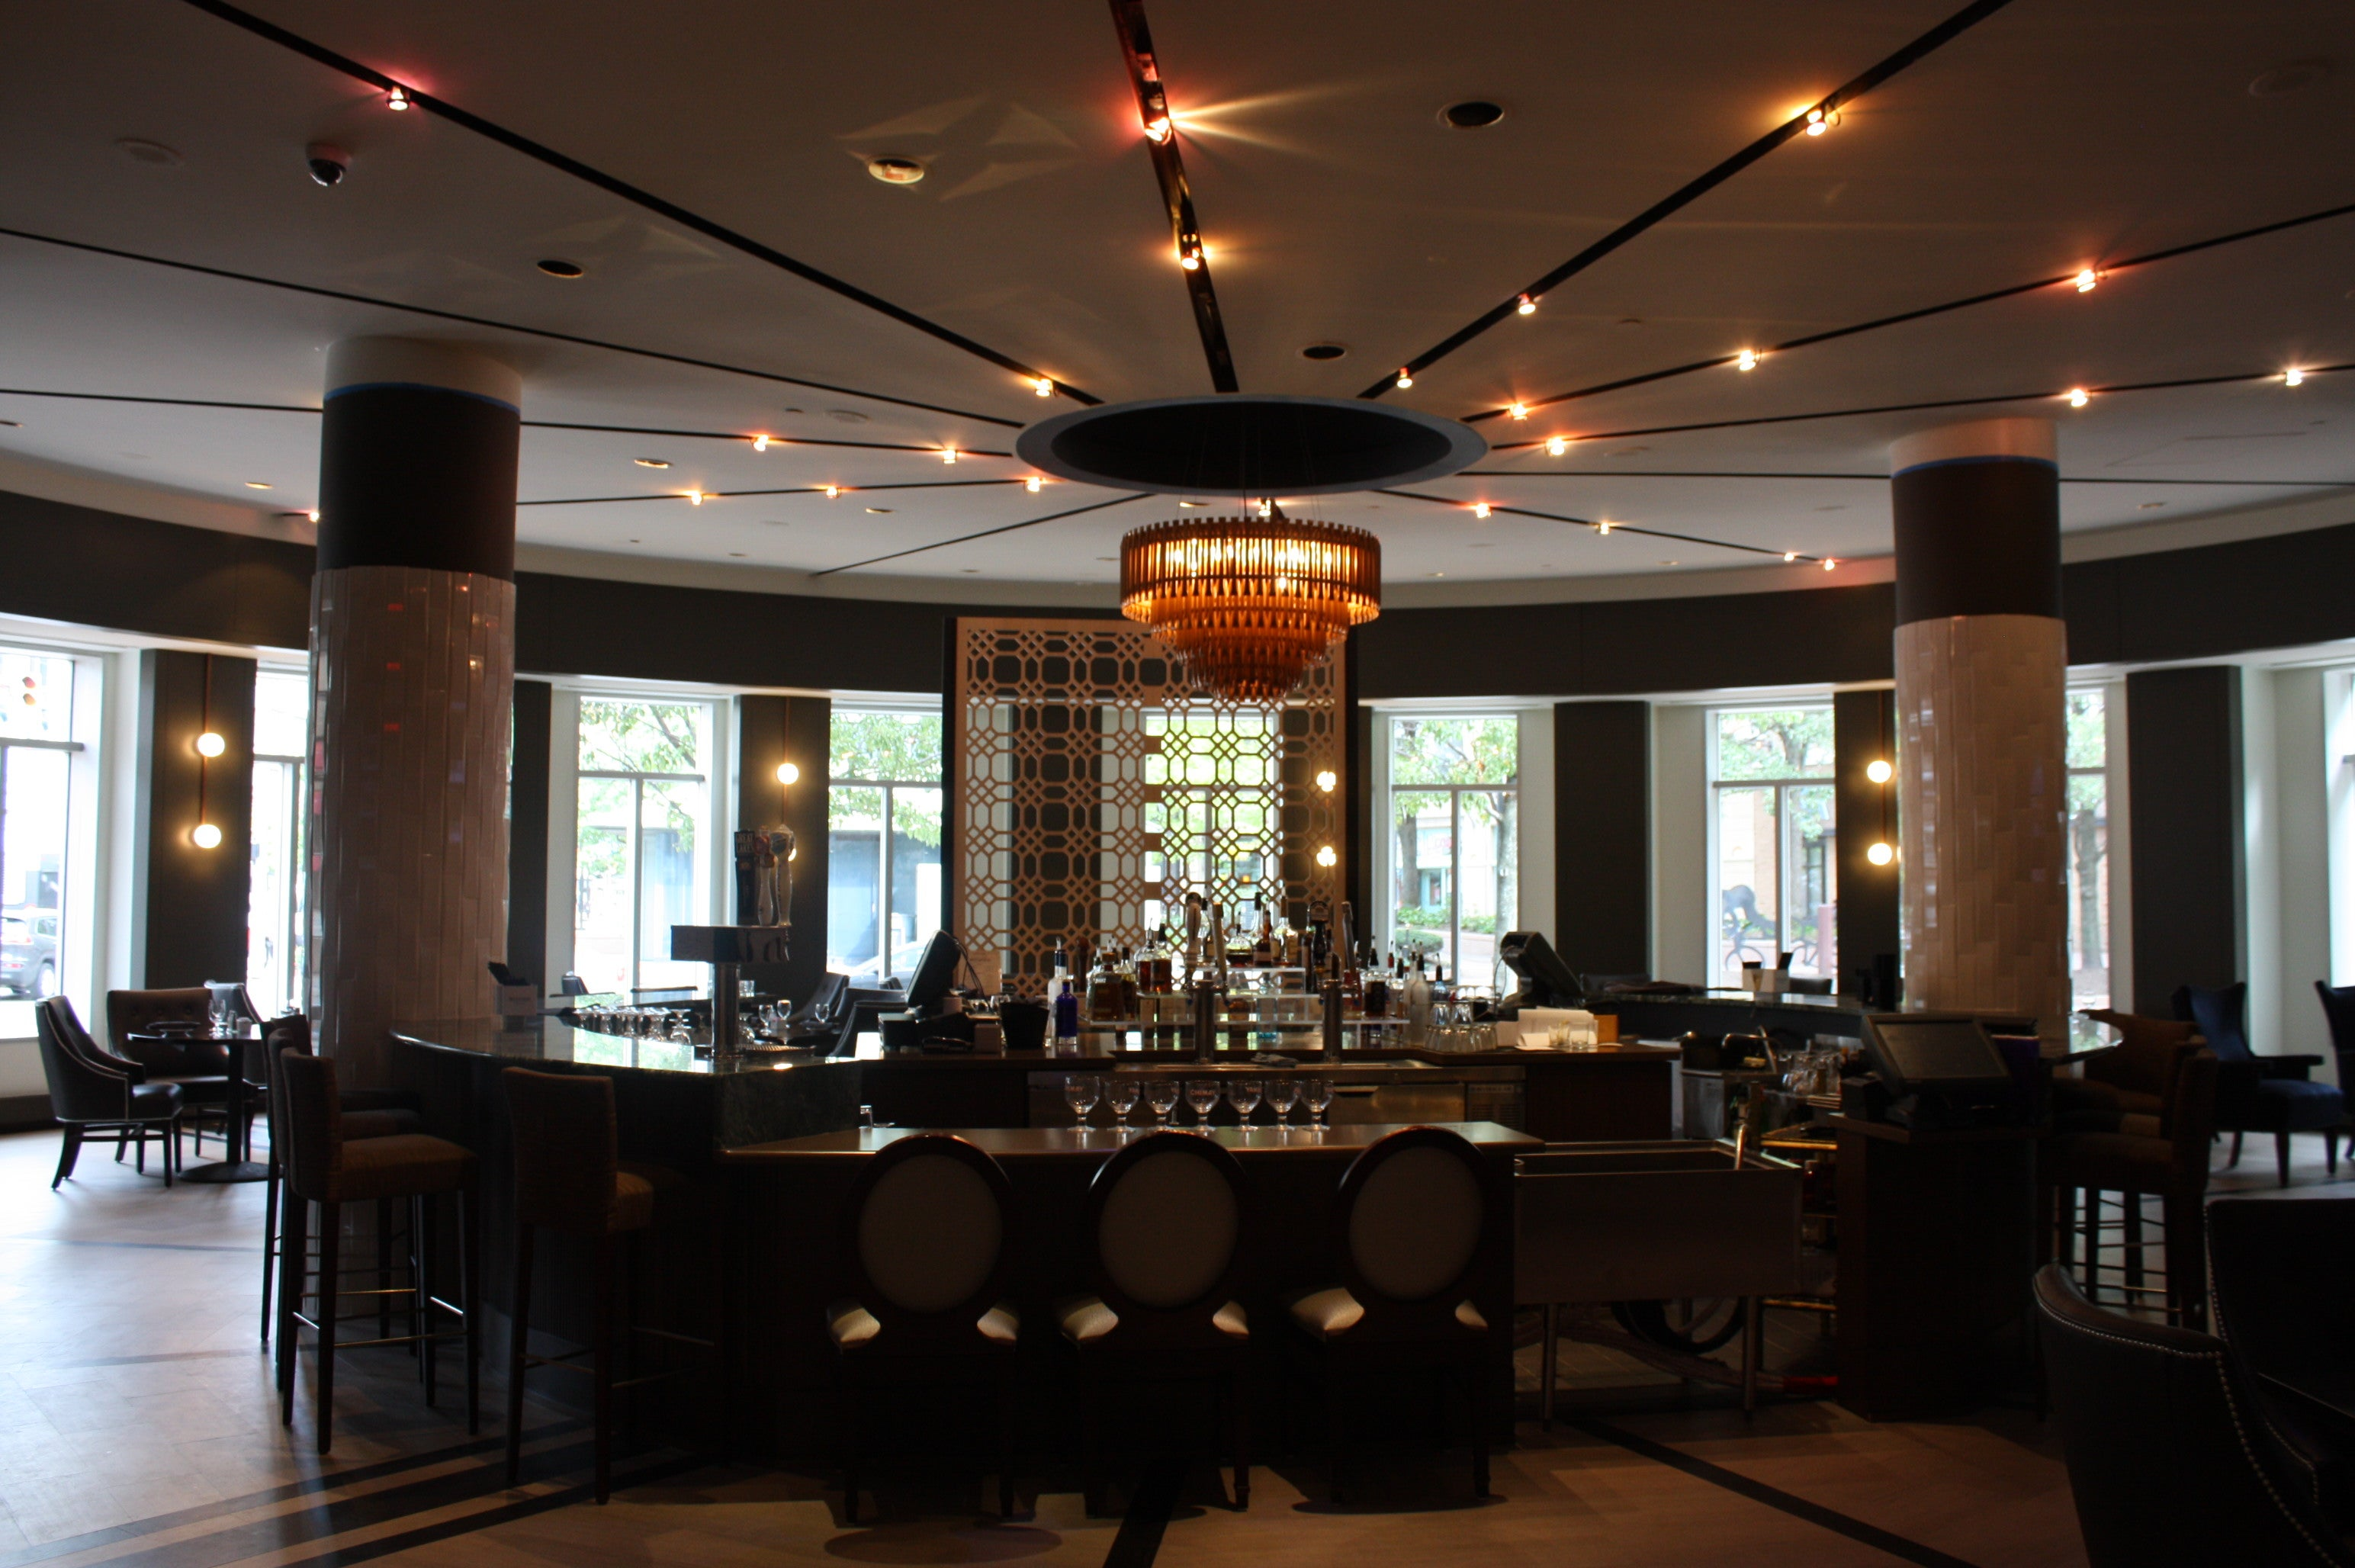 Hotel dining guide playhouse square for Restaurant guide